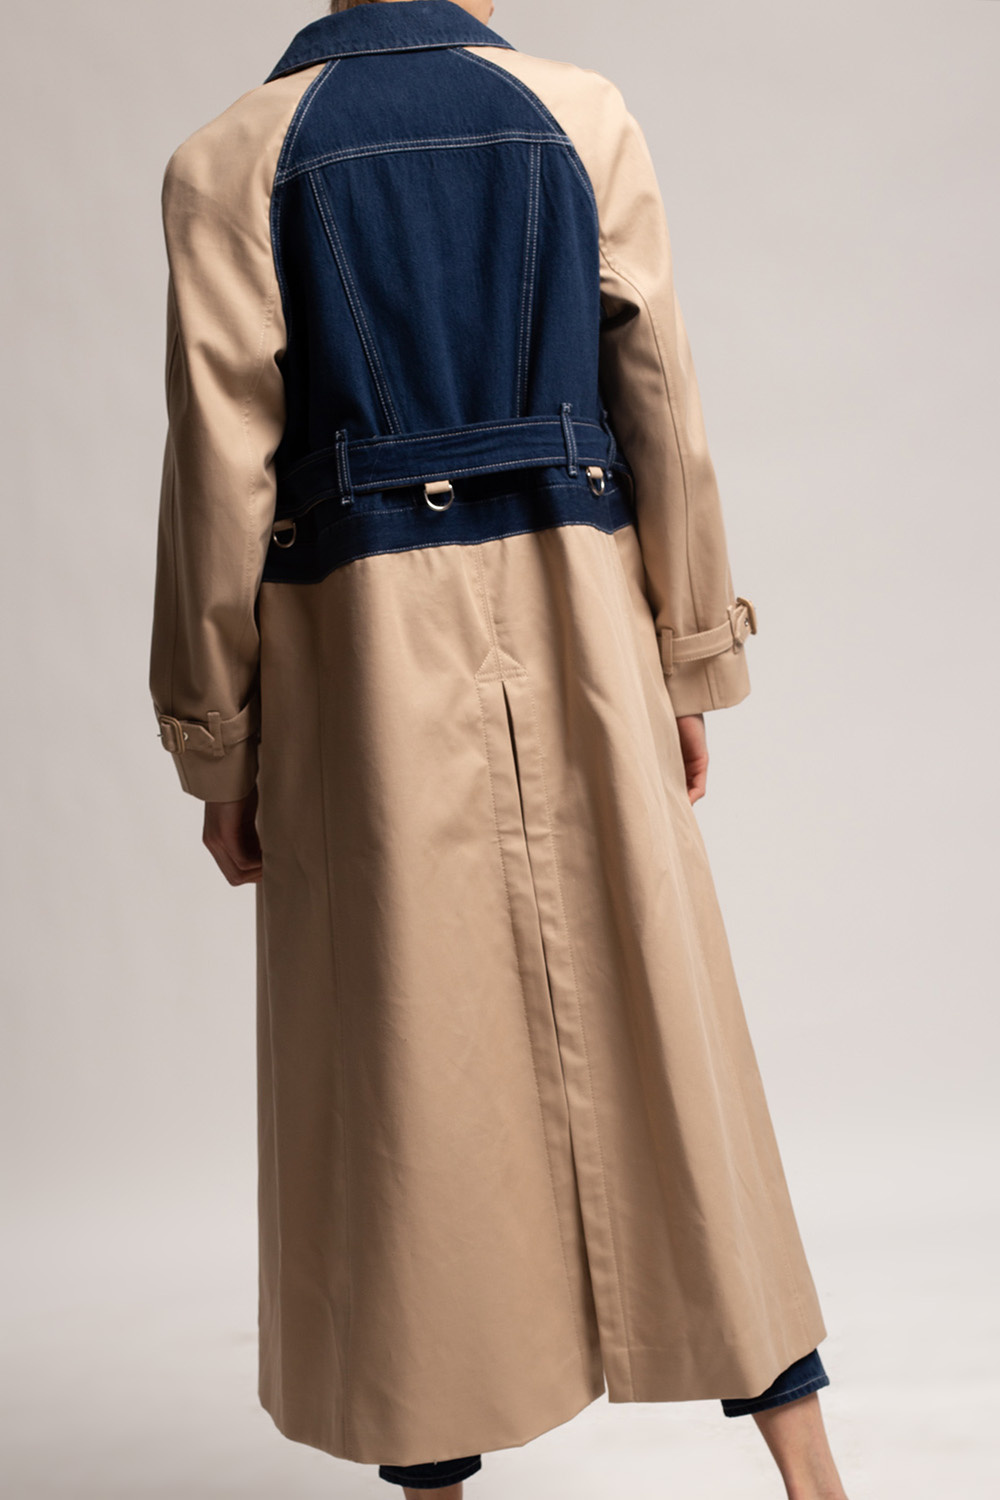 Burberry Jeans panelled trench